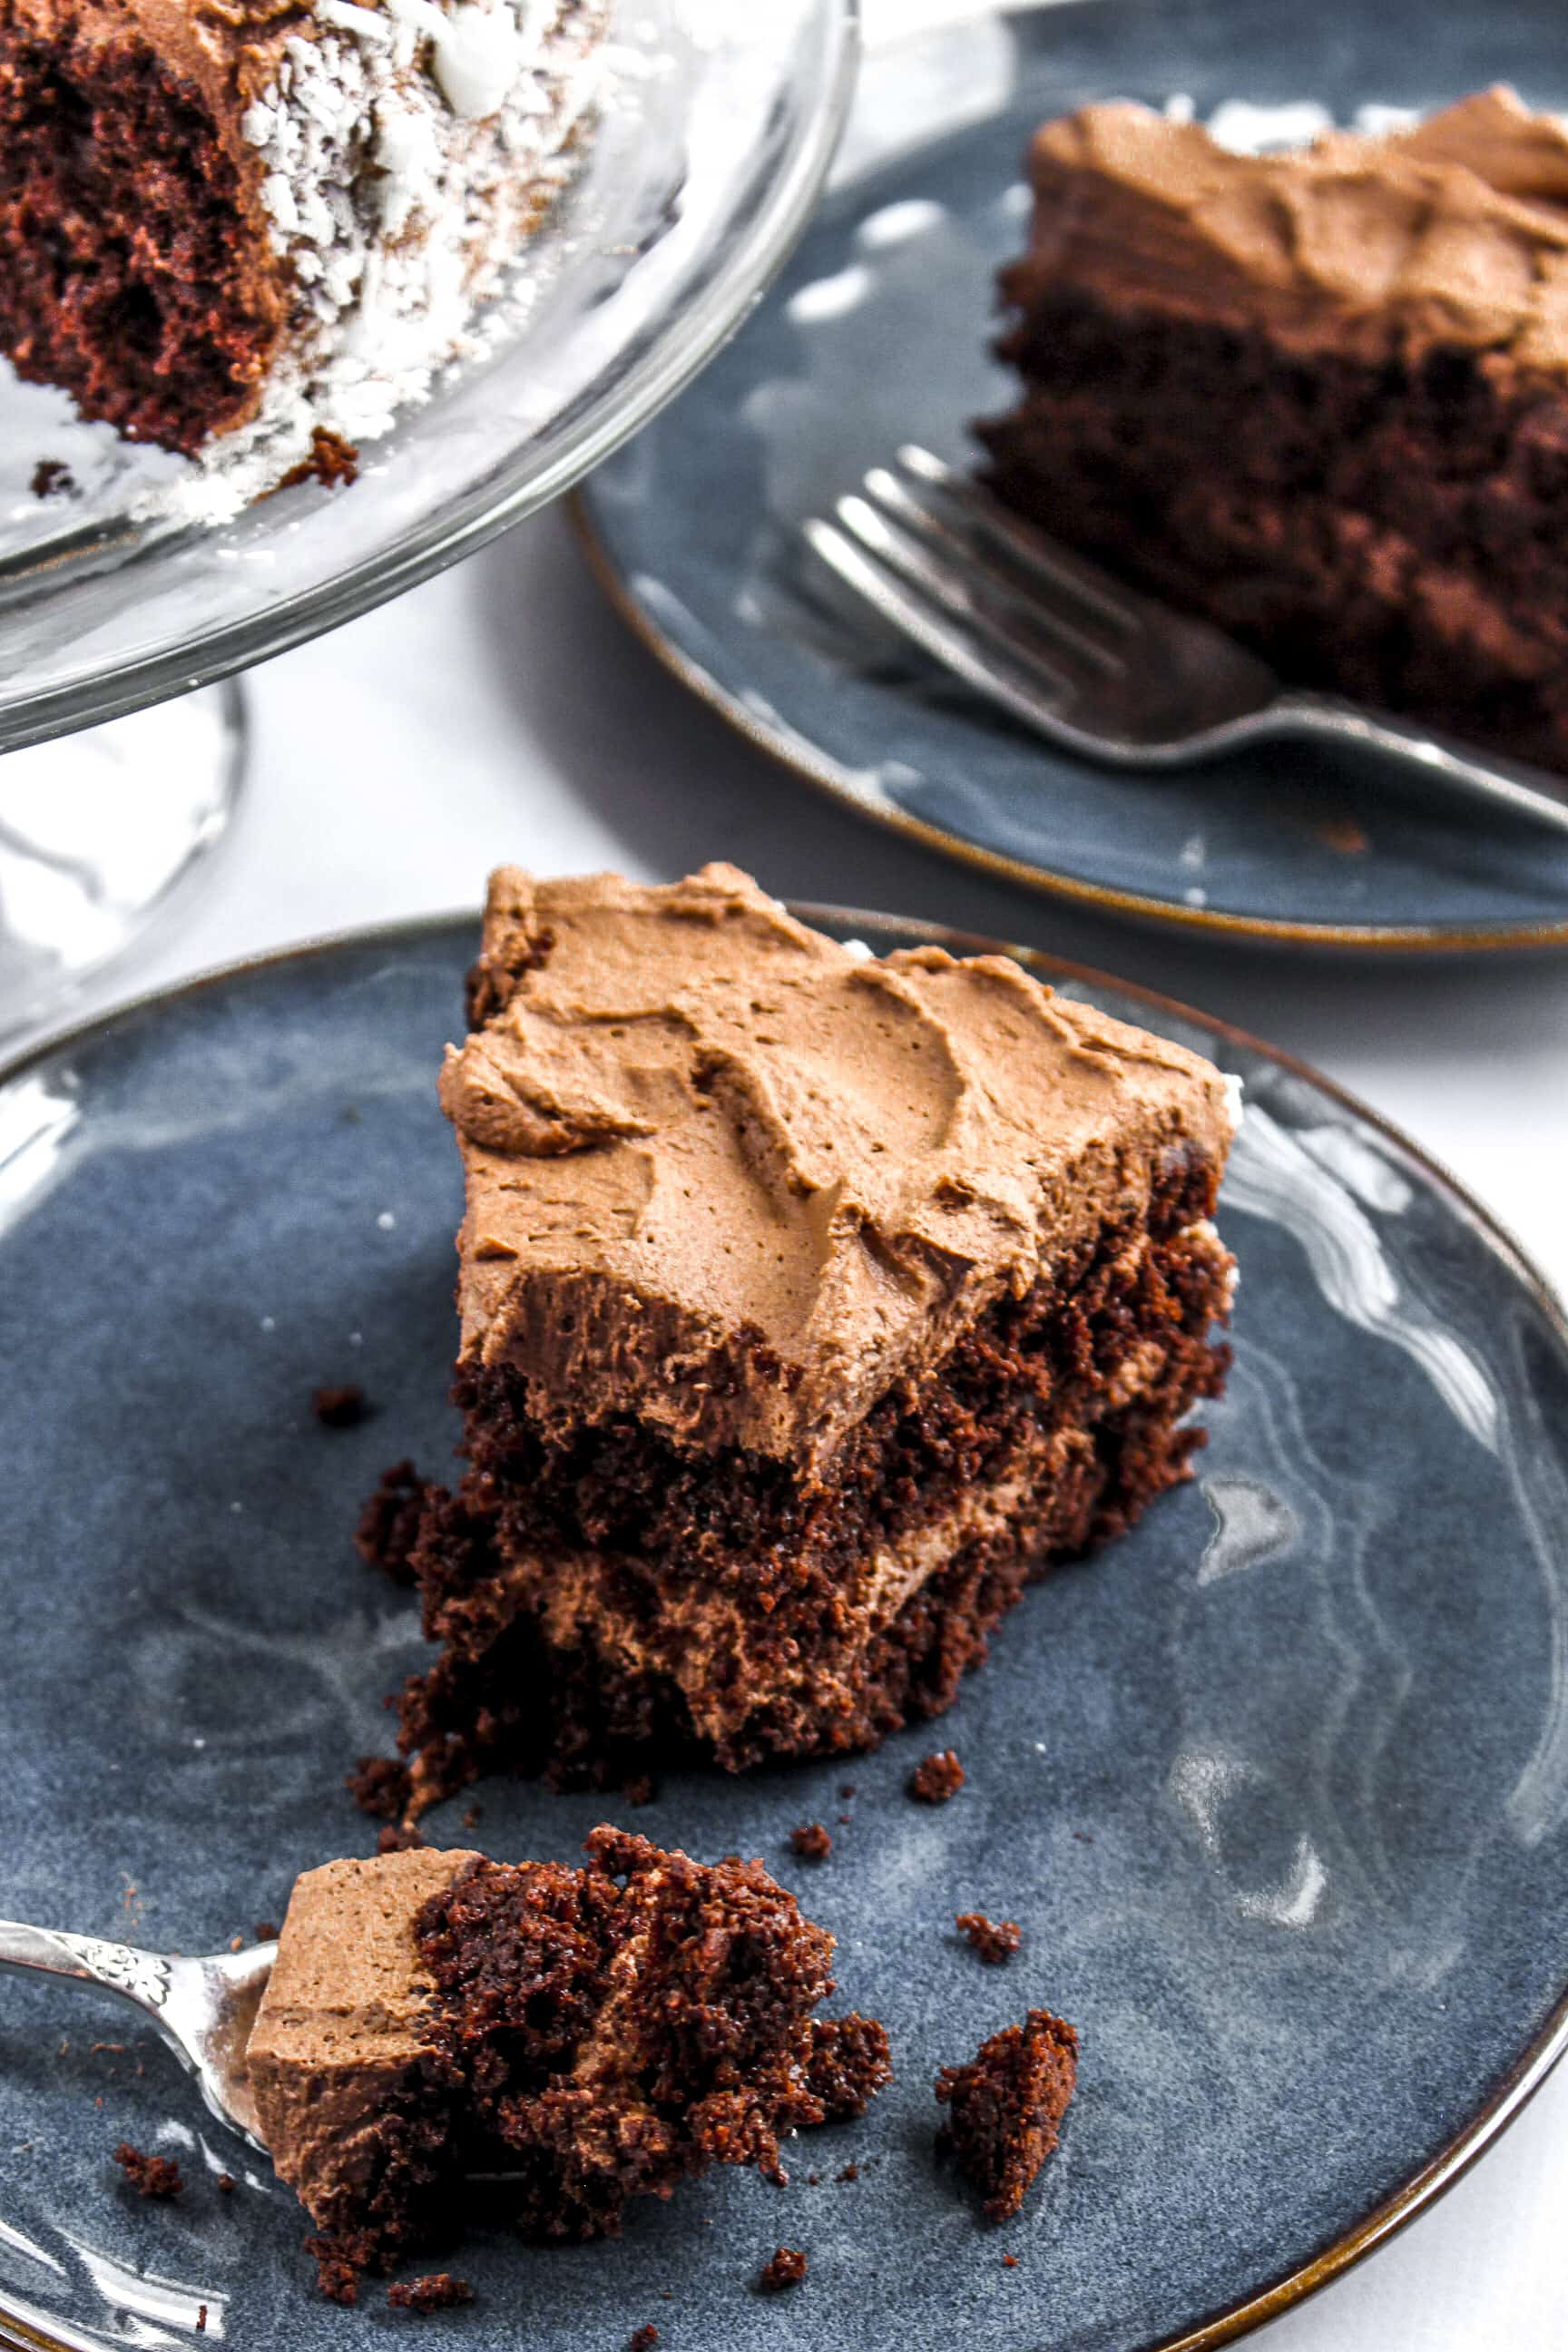 Chocolate Quinoa Cake with Whipped Ganache Frosting